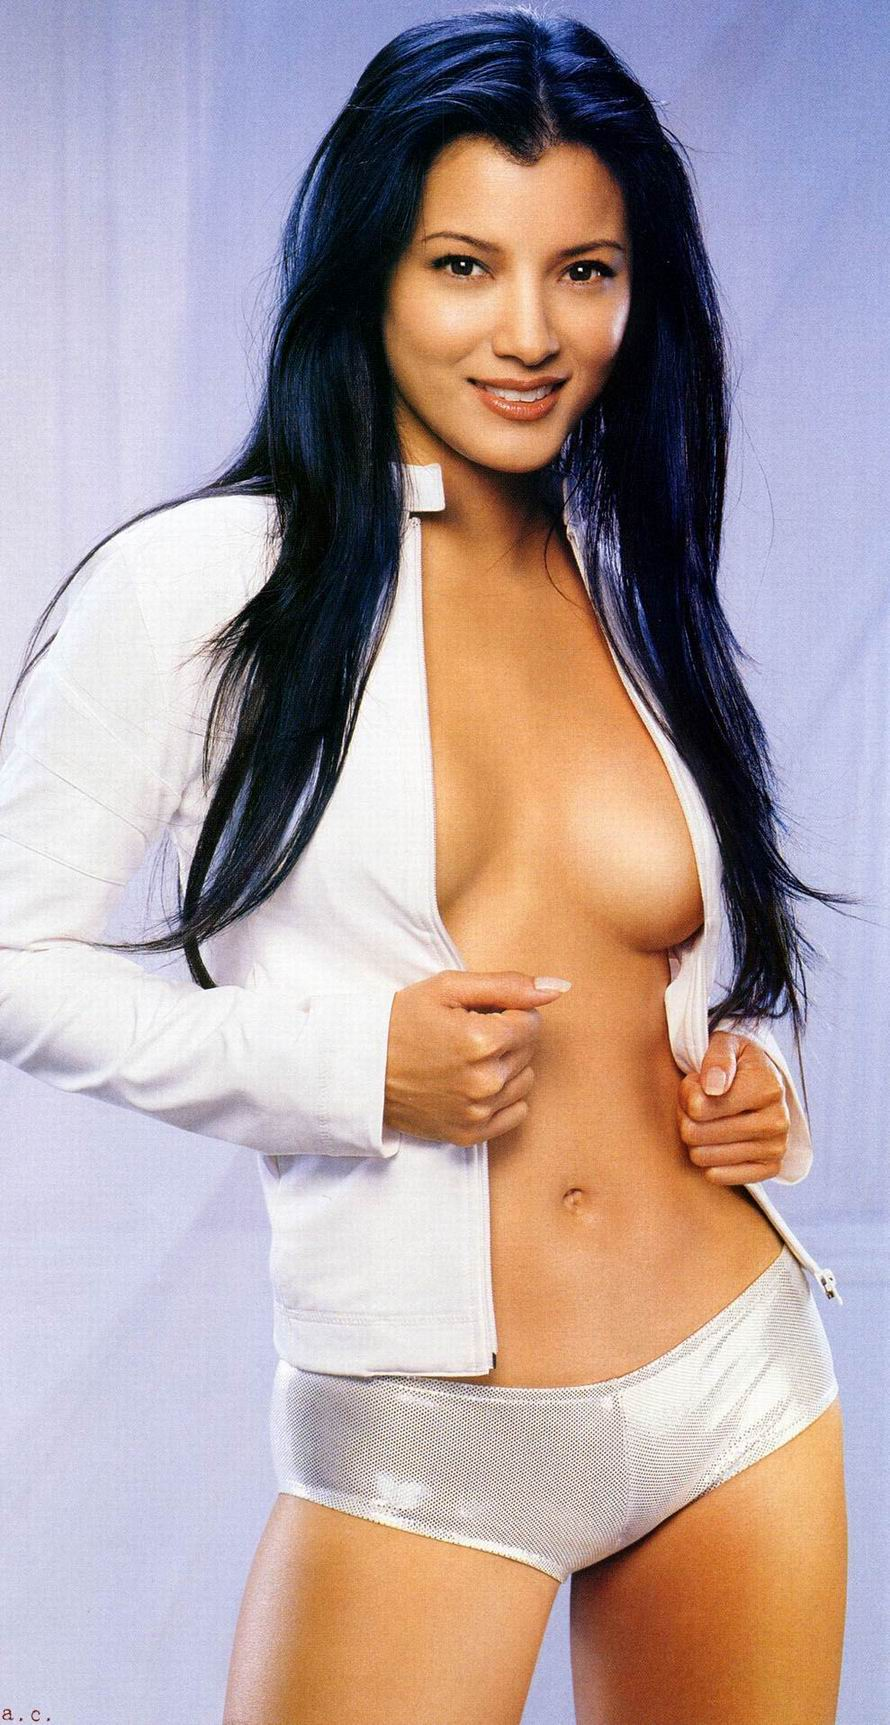 Kelly Hu Hot Pictures, Hot Photo Gallery